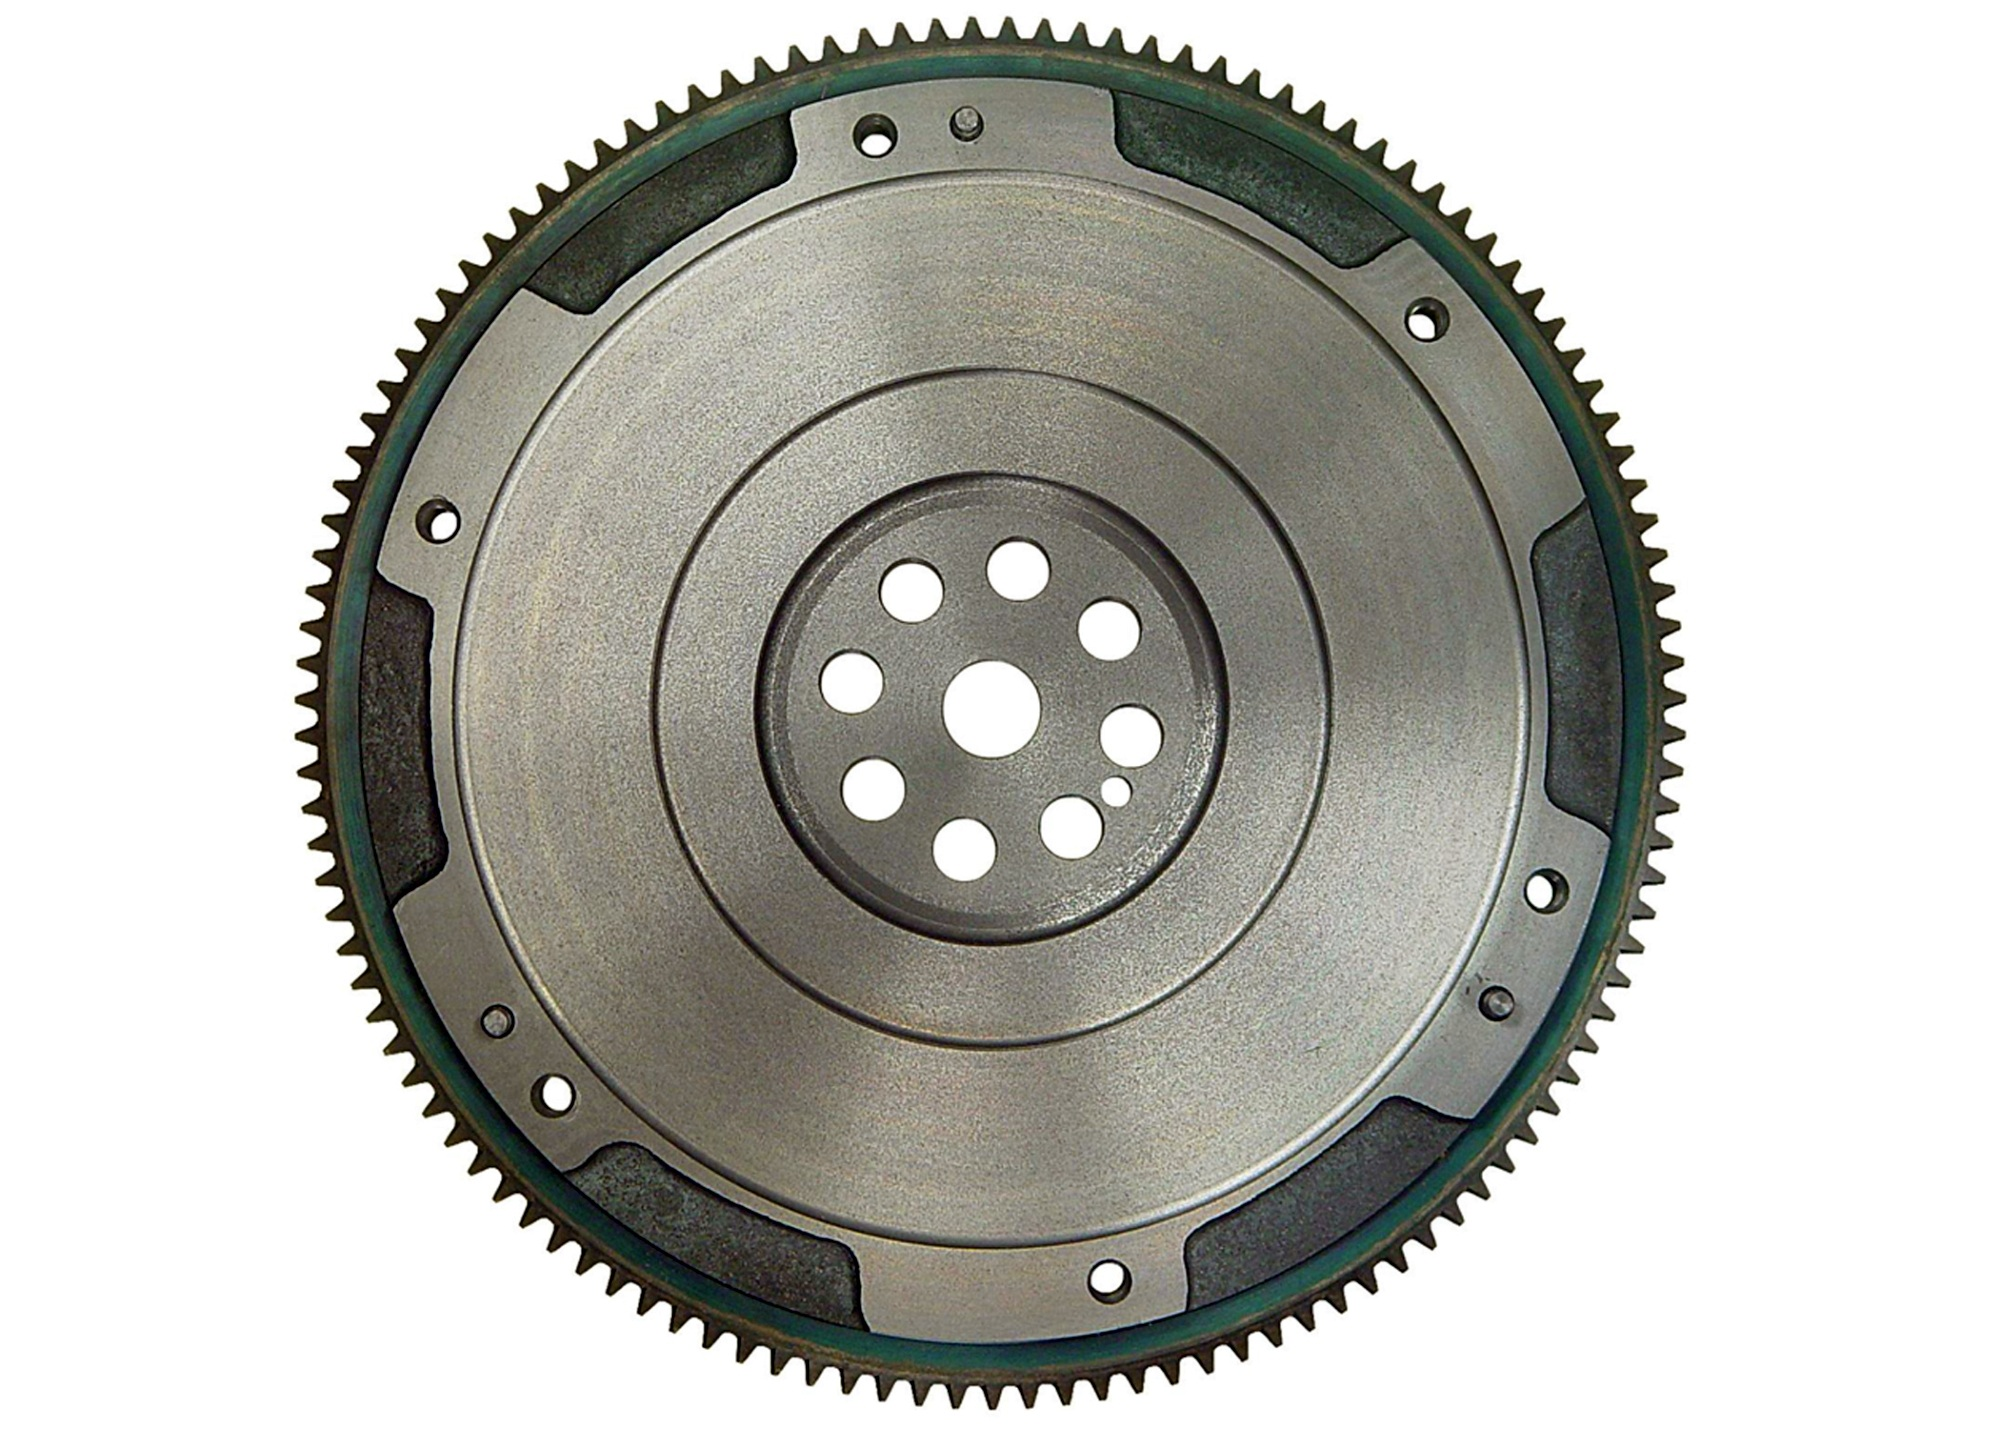 ACDELCO PROFESSIONAL - Clutch Flywheel - DCC 388026